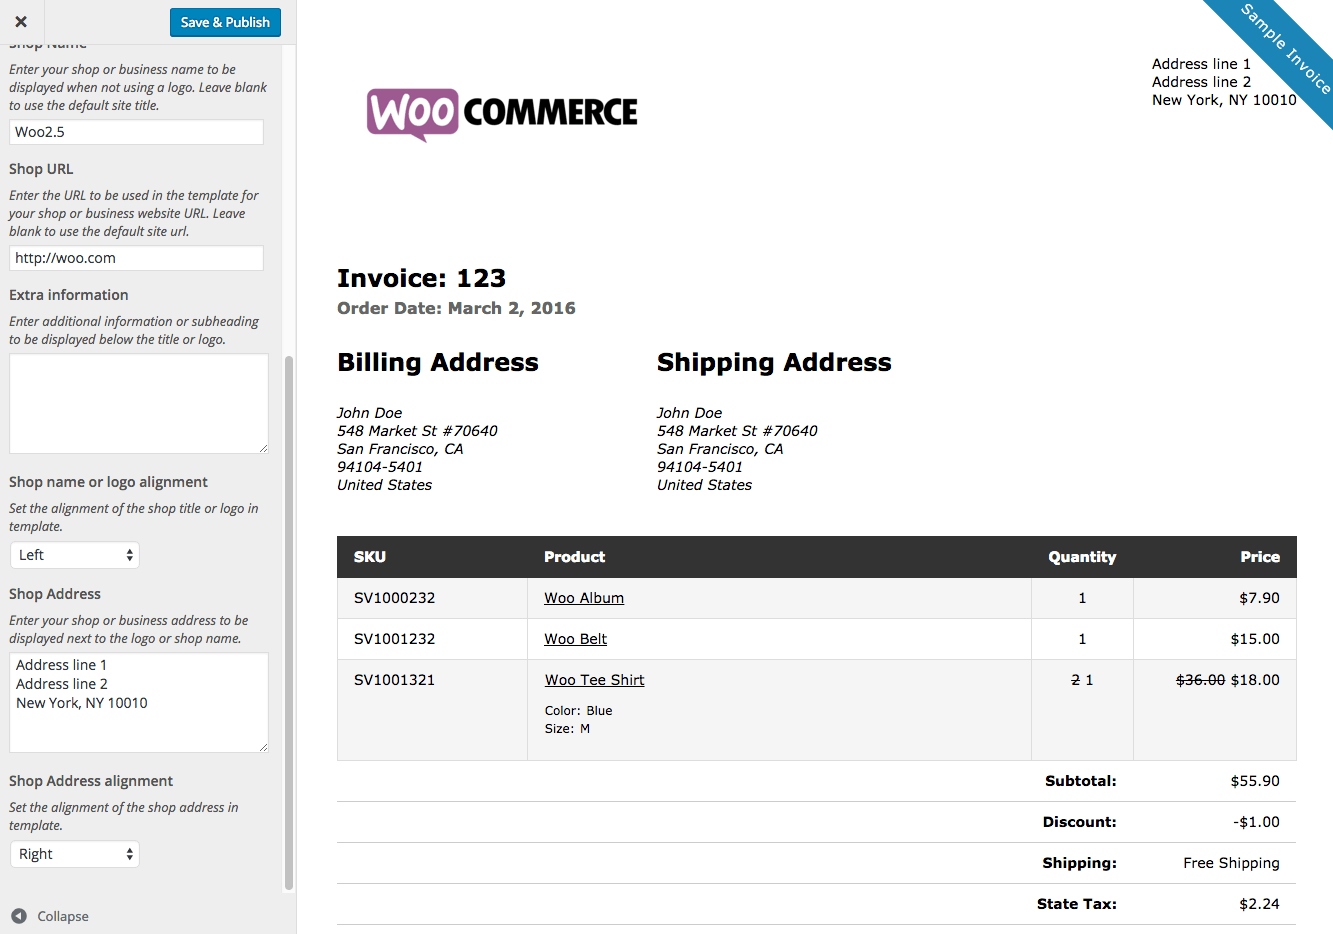 Pigbrotherus  Unique Woocommerce Print Invoices Amp Packing Lists  Woocommerce Docs With Interesting Woocommerce Print Invoices  Packing Lists Customizer With Comely Request Read Receipt In Gmail Also Request Read Receipt In Addition Non Receipt Claim Qoo And Walmart Receipt Tax Codes As Well As Tool Receipts Additionally Fuel Receipt Template From Docswoocommercecom With Pigbrotherus  Interesting Woocommerce Print Invoices Amp Packing Lists  Woocommerce Docs With Comely Woocommerce Print Invoices  Packing Lists Customizer And Unique Request Read Receipt In Gmail Also Request Read Receipt In Addition Non Receipt Claim Qoo From Docswoocommercecom